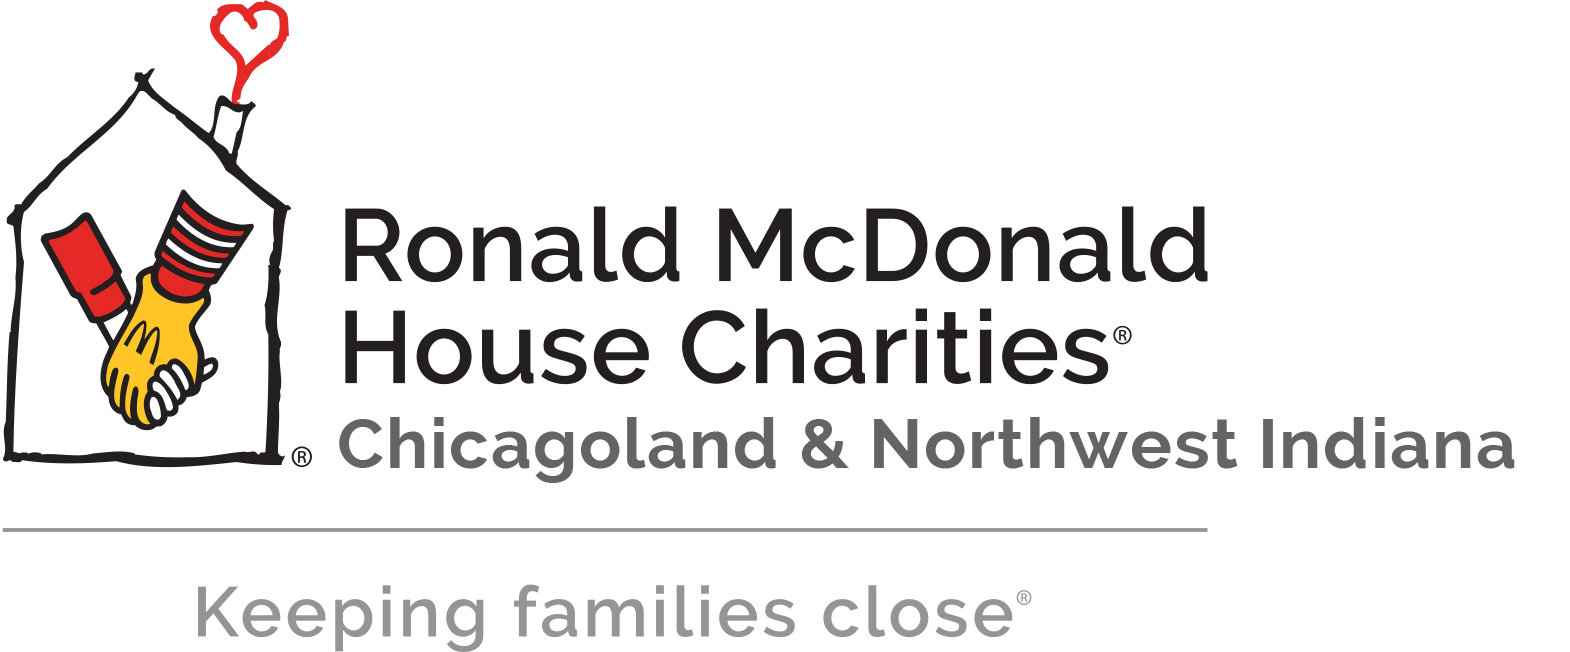 RMHC_Chapter_logo_hz-color-tag.jpg